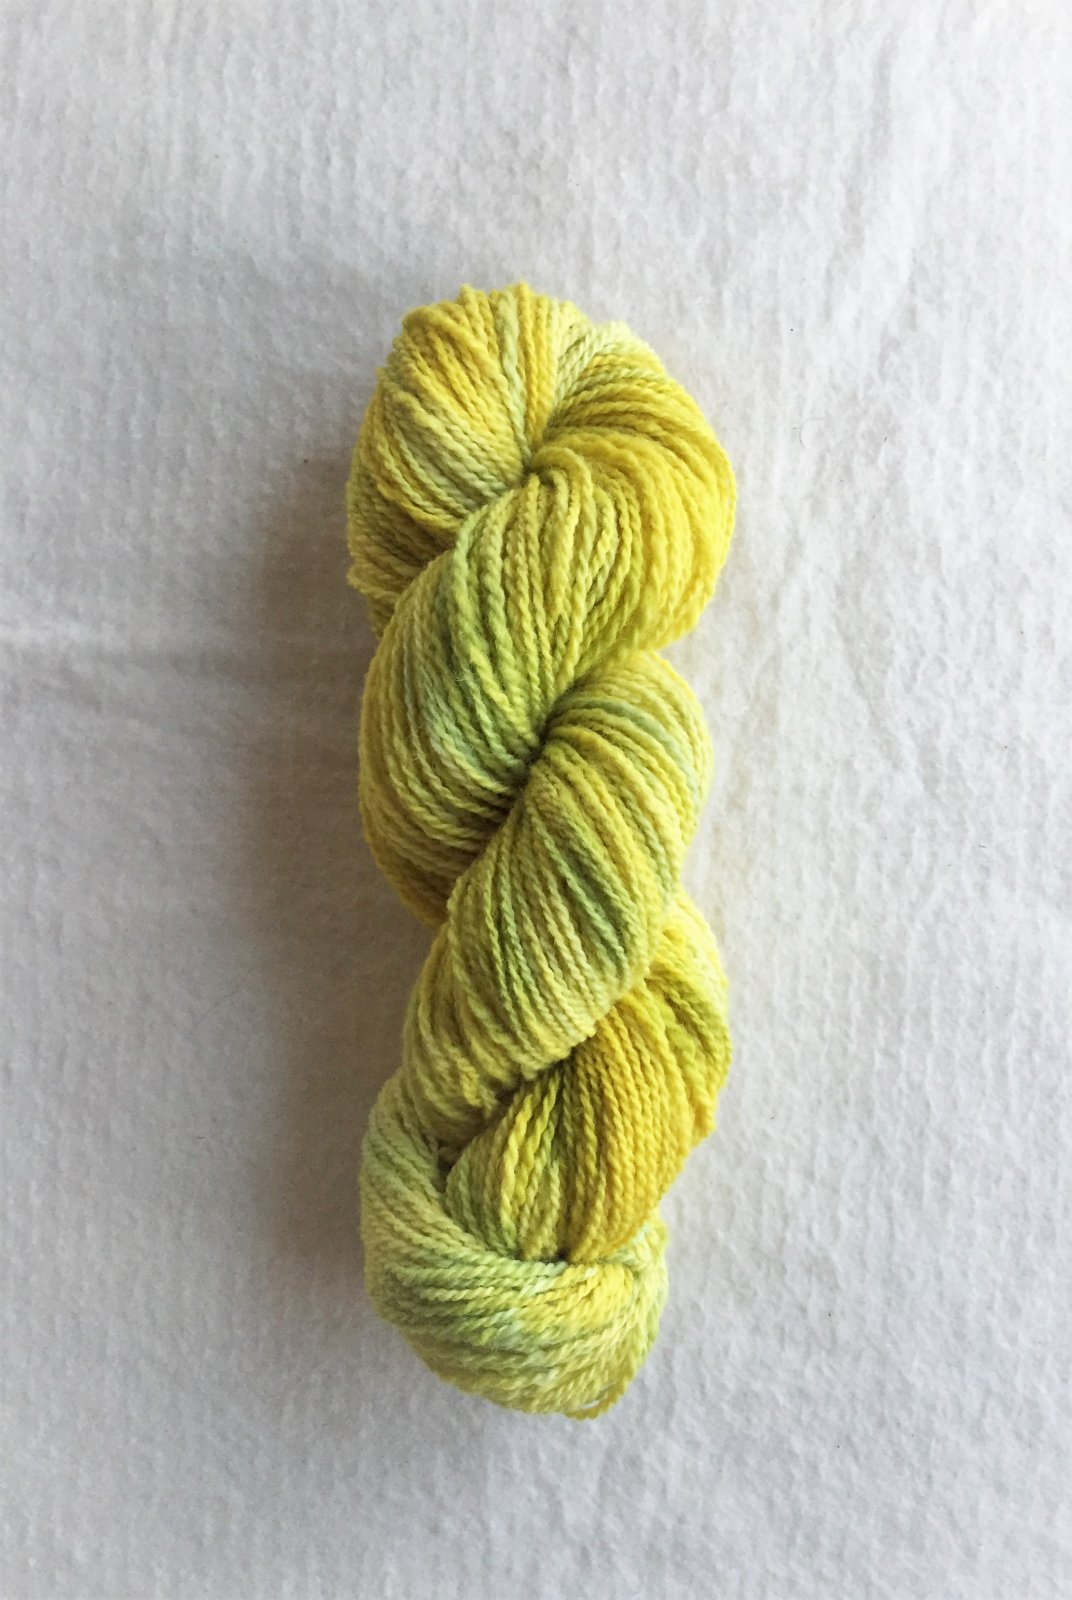 Nyssa by Pindrop Fibers - Botanically Dyed - 100% Ohio Wool - Sport Weight